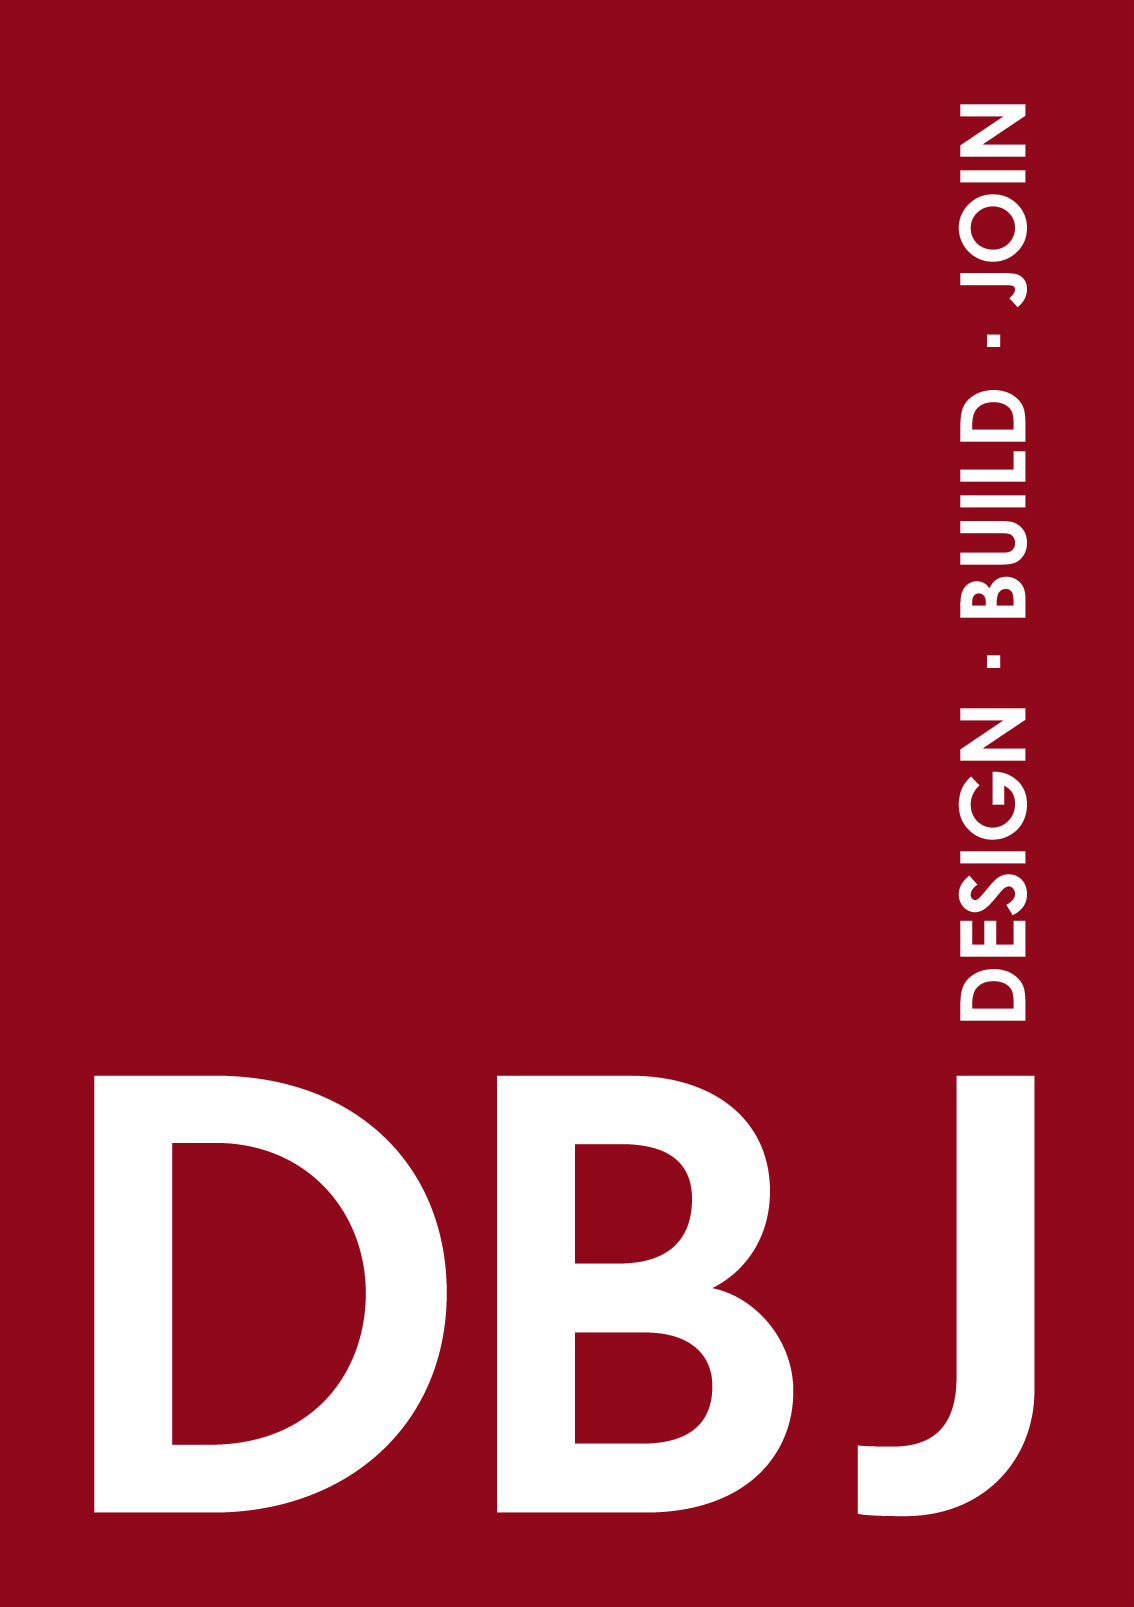 DBJ Furniture Ltd | online media